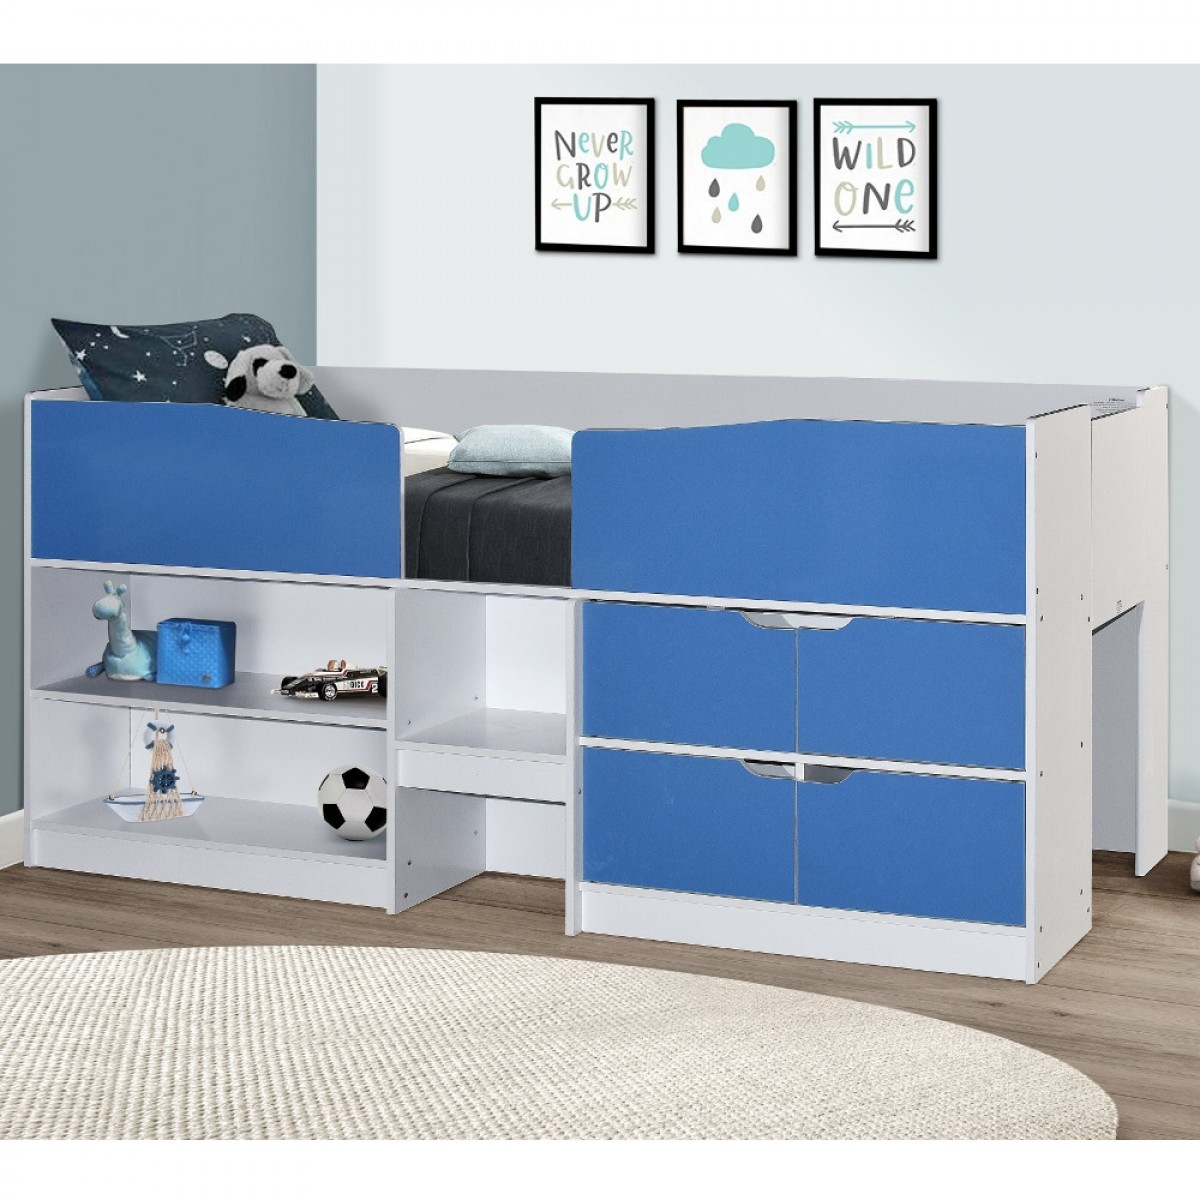 Merlin Blue and White Wooden Mid Sleeper Cabin Storage Bed